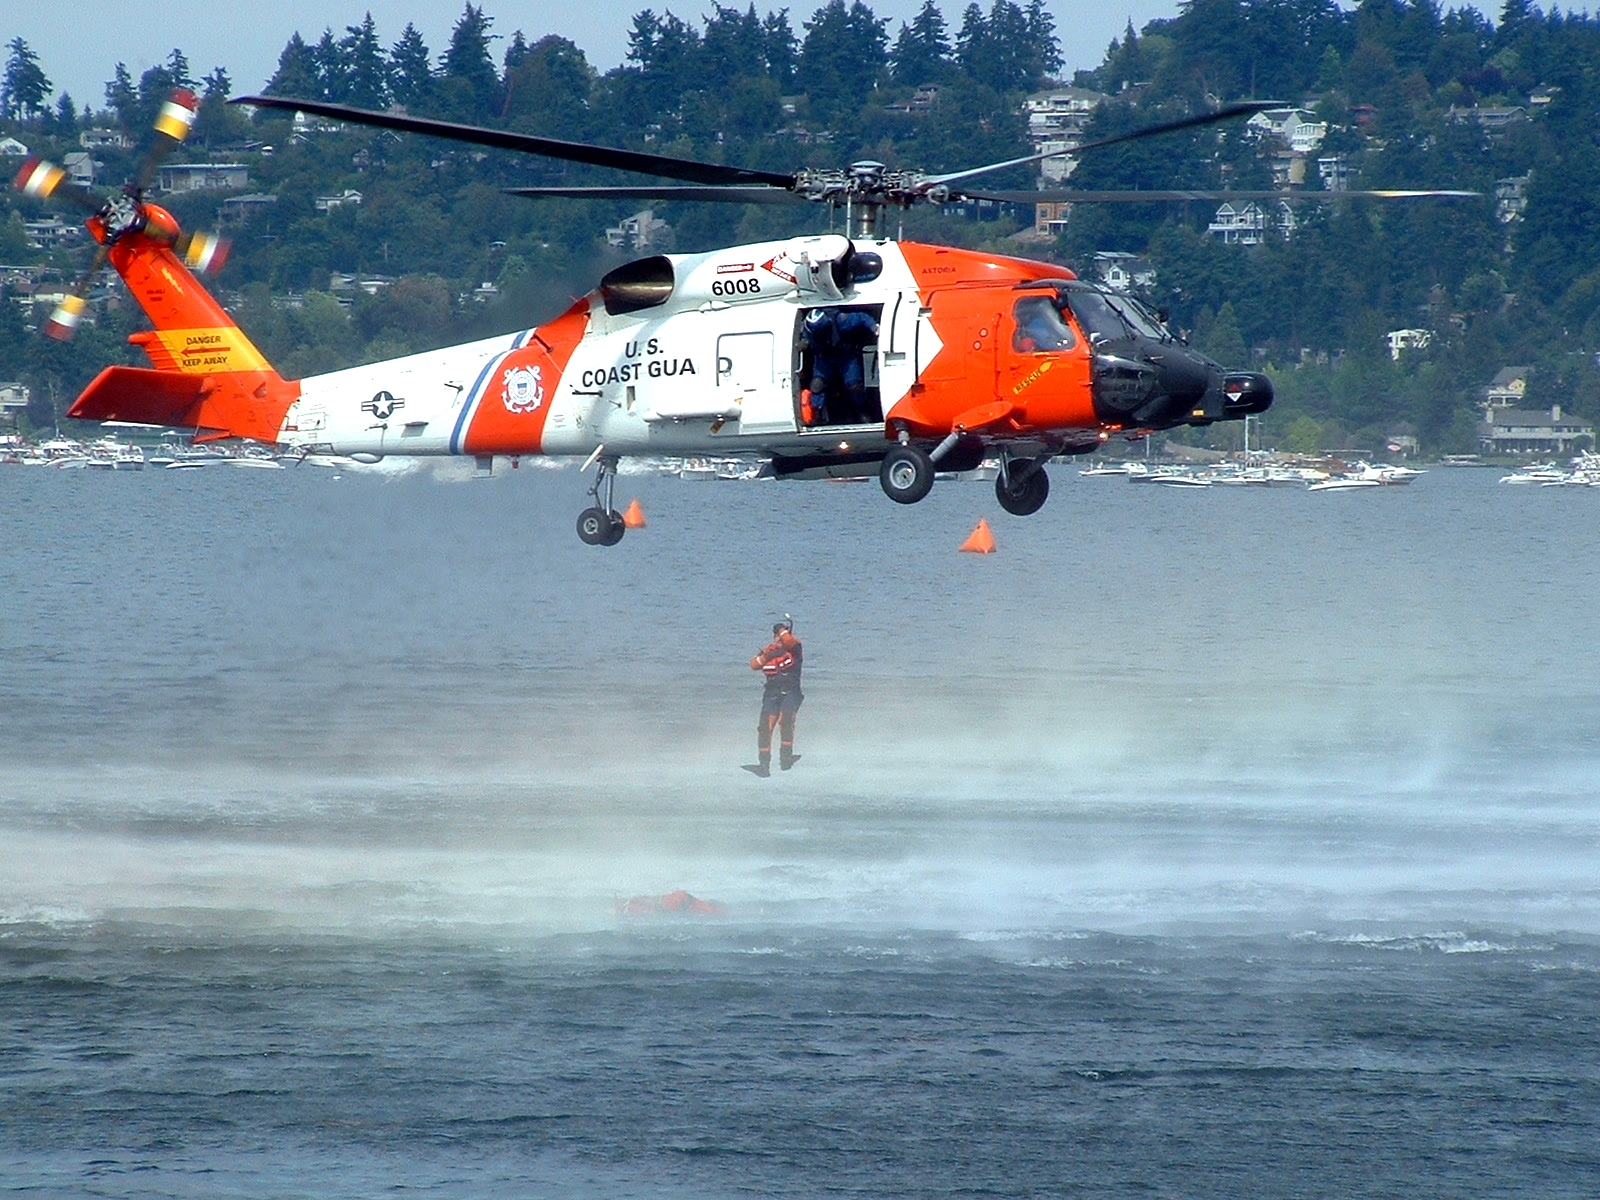 File:US Coast Guard helicopter rescue demonstration jpg